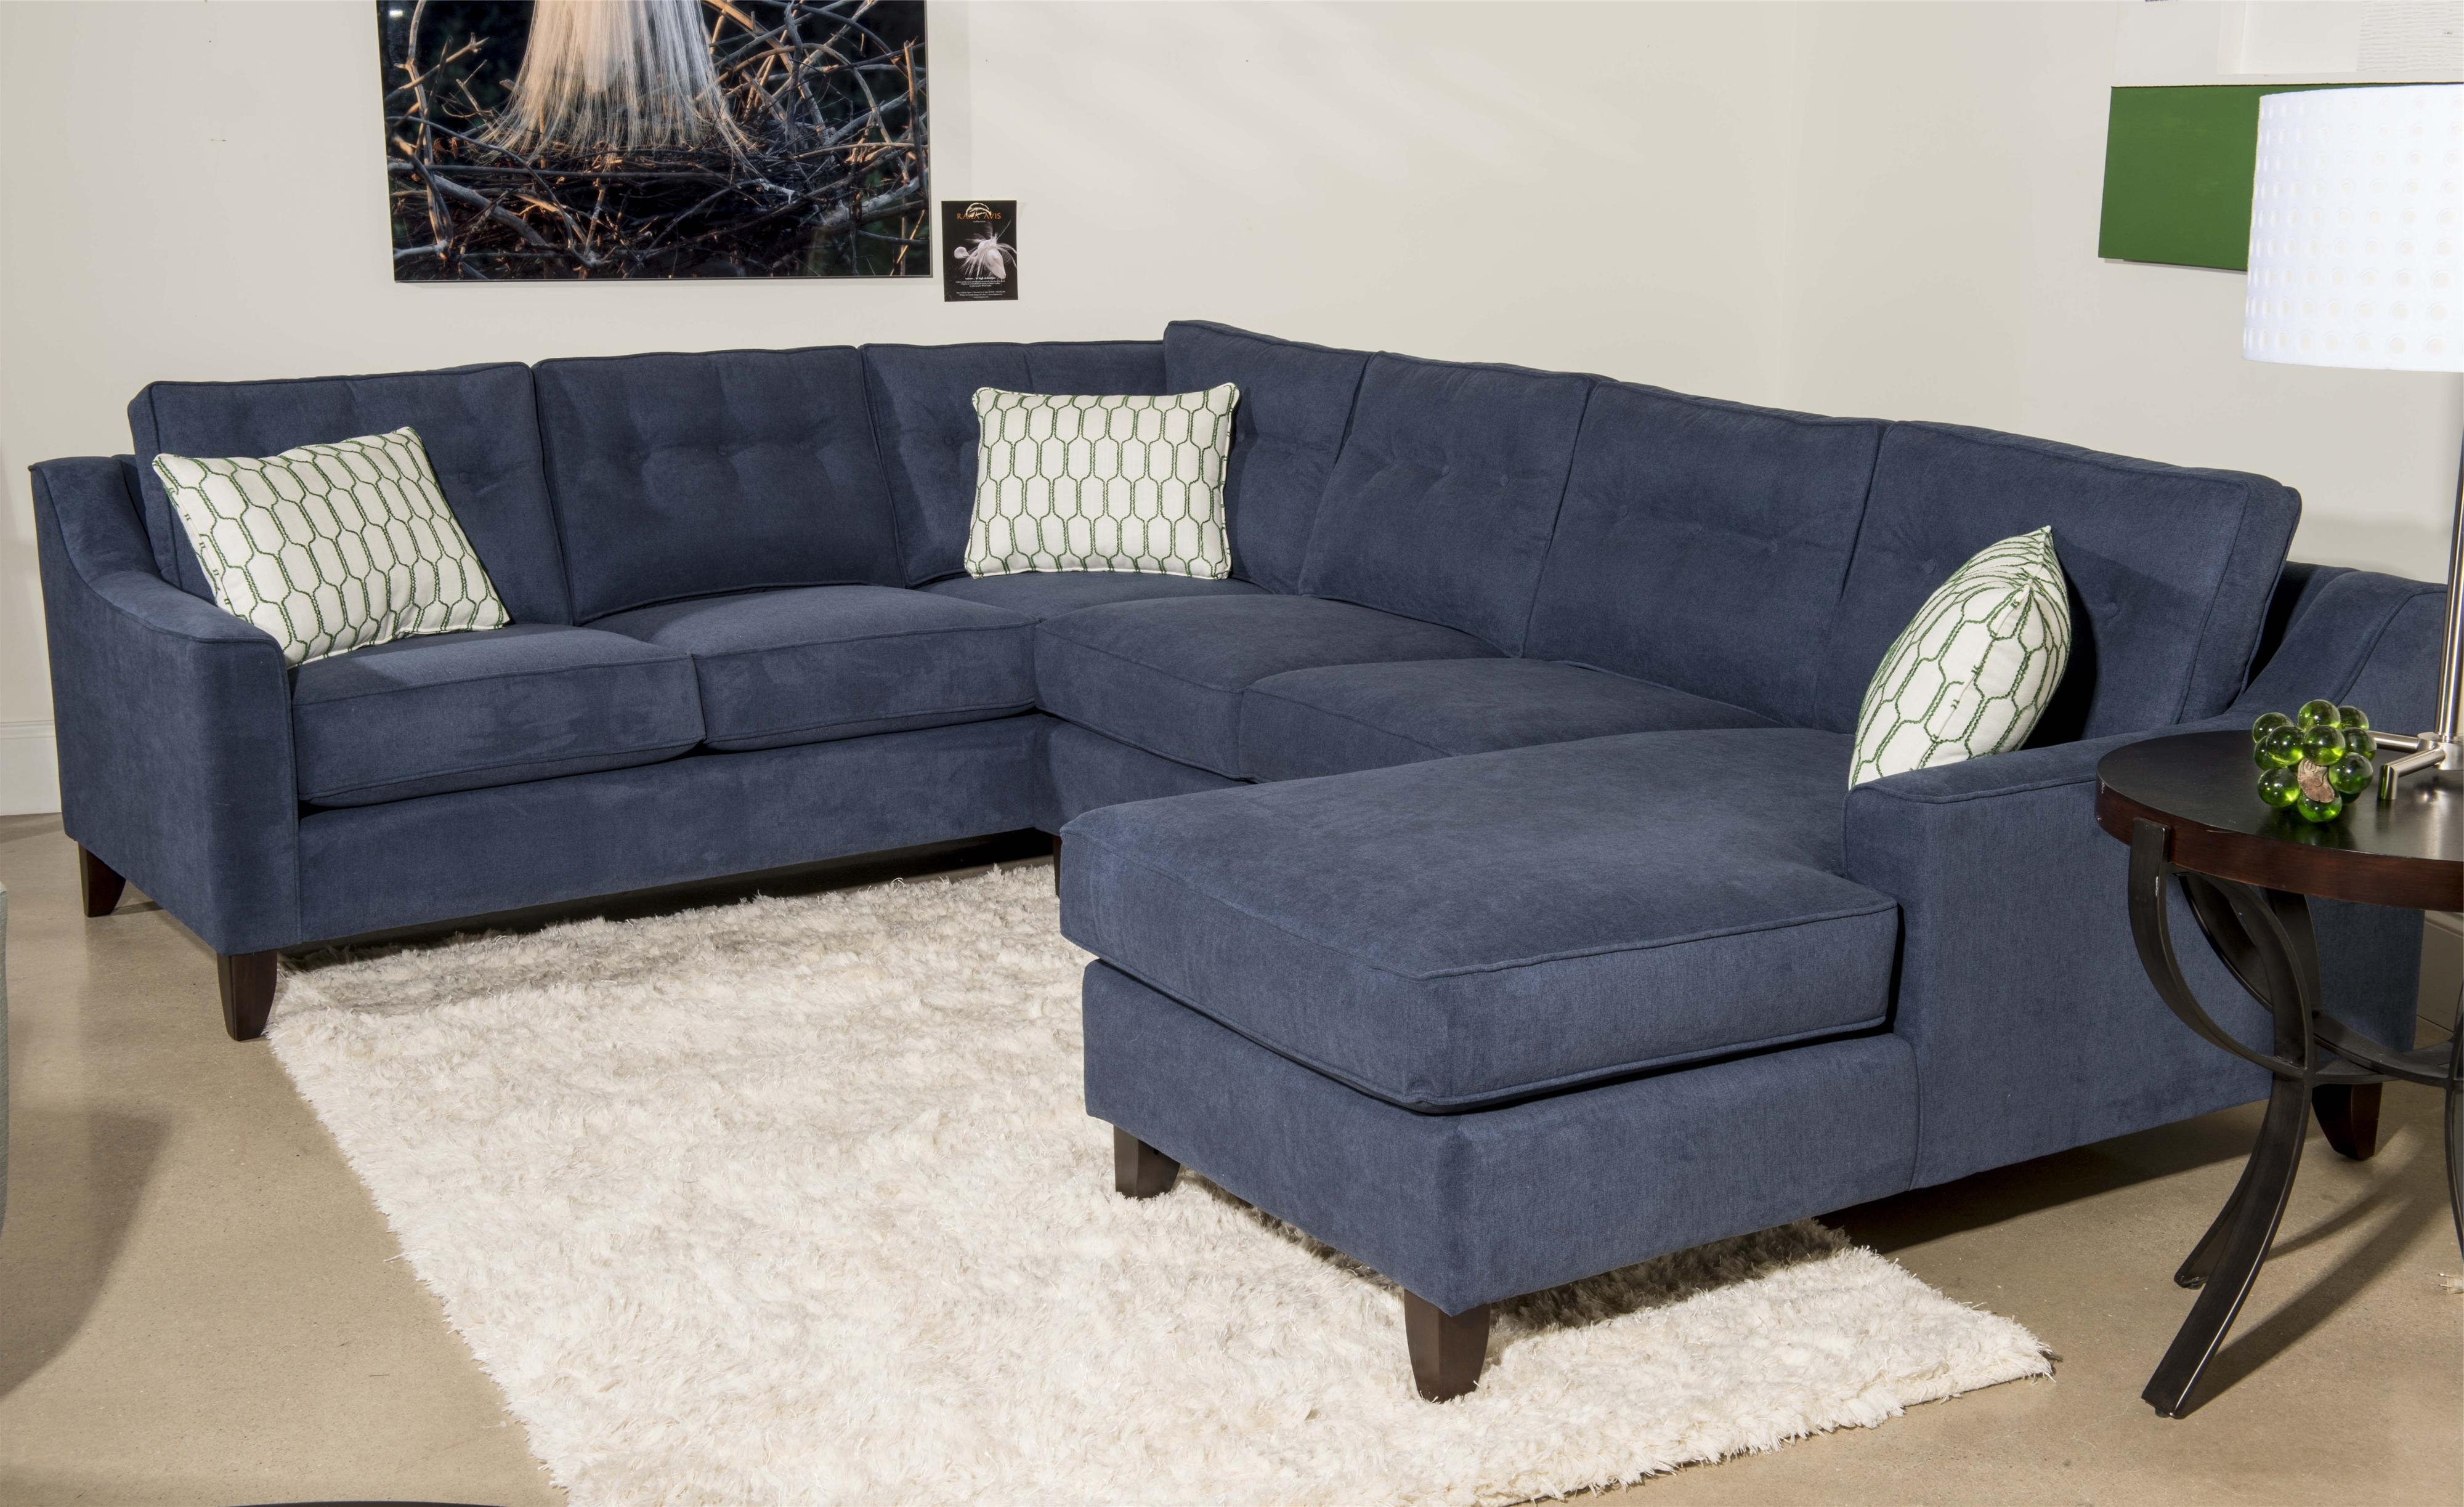 Sofa Chaise Sectionals Inside Widely Used Contemporary 3 Piece Sectional Sofa With Chaiseklaussner (View 2 of 15)